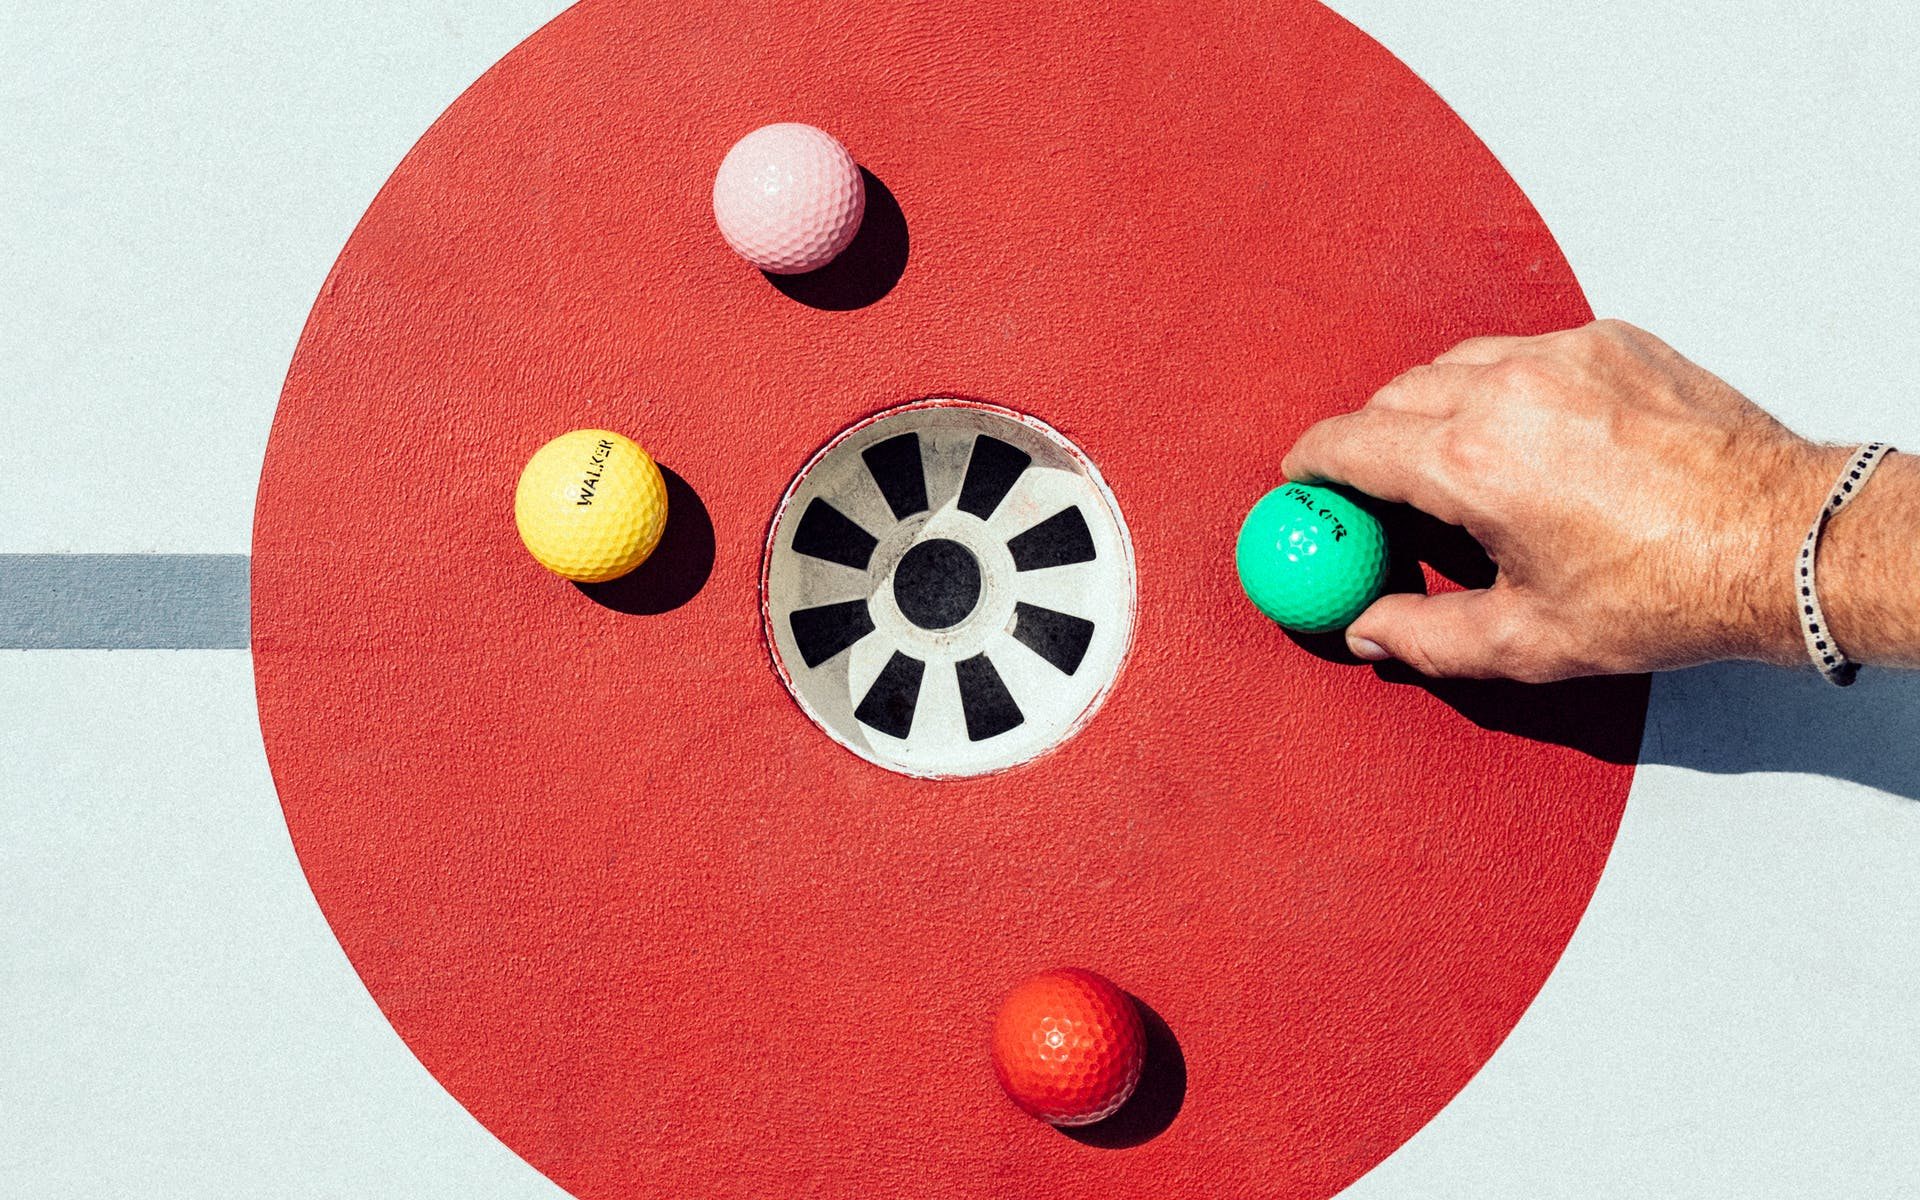 mini golf balls and hole with hand